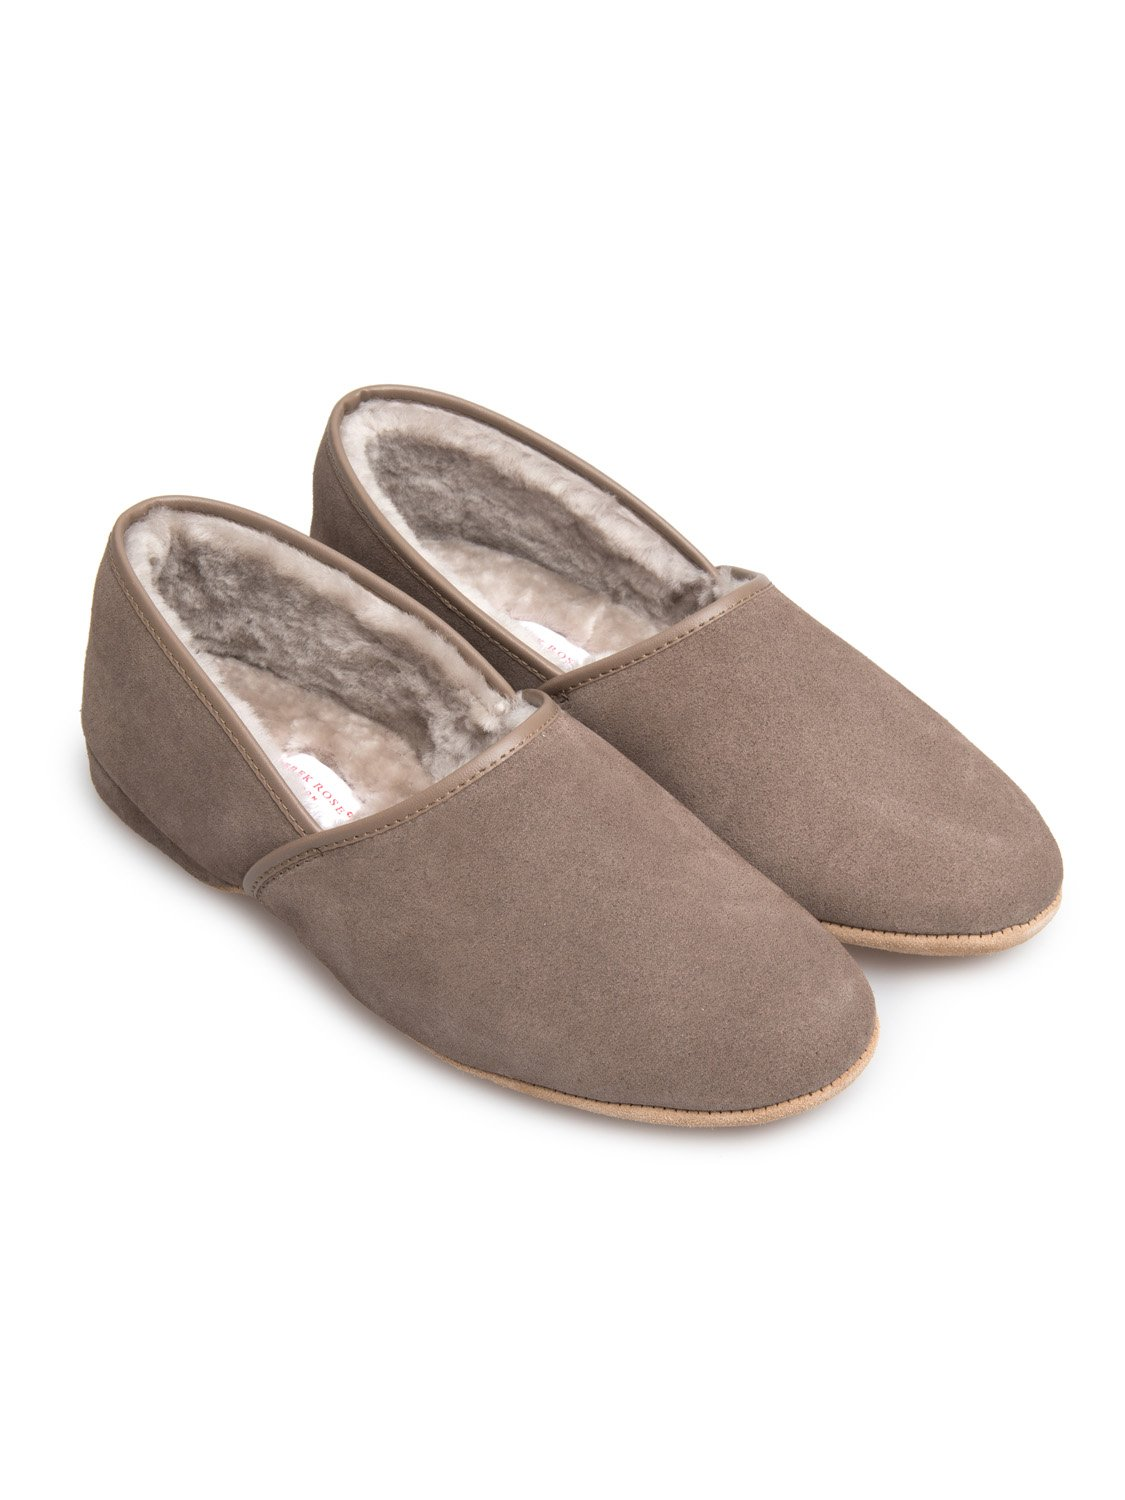 Men's Closed-Back Slipper Crawford Suede Sheepskin Beige